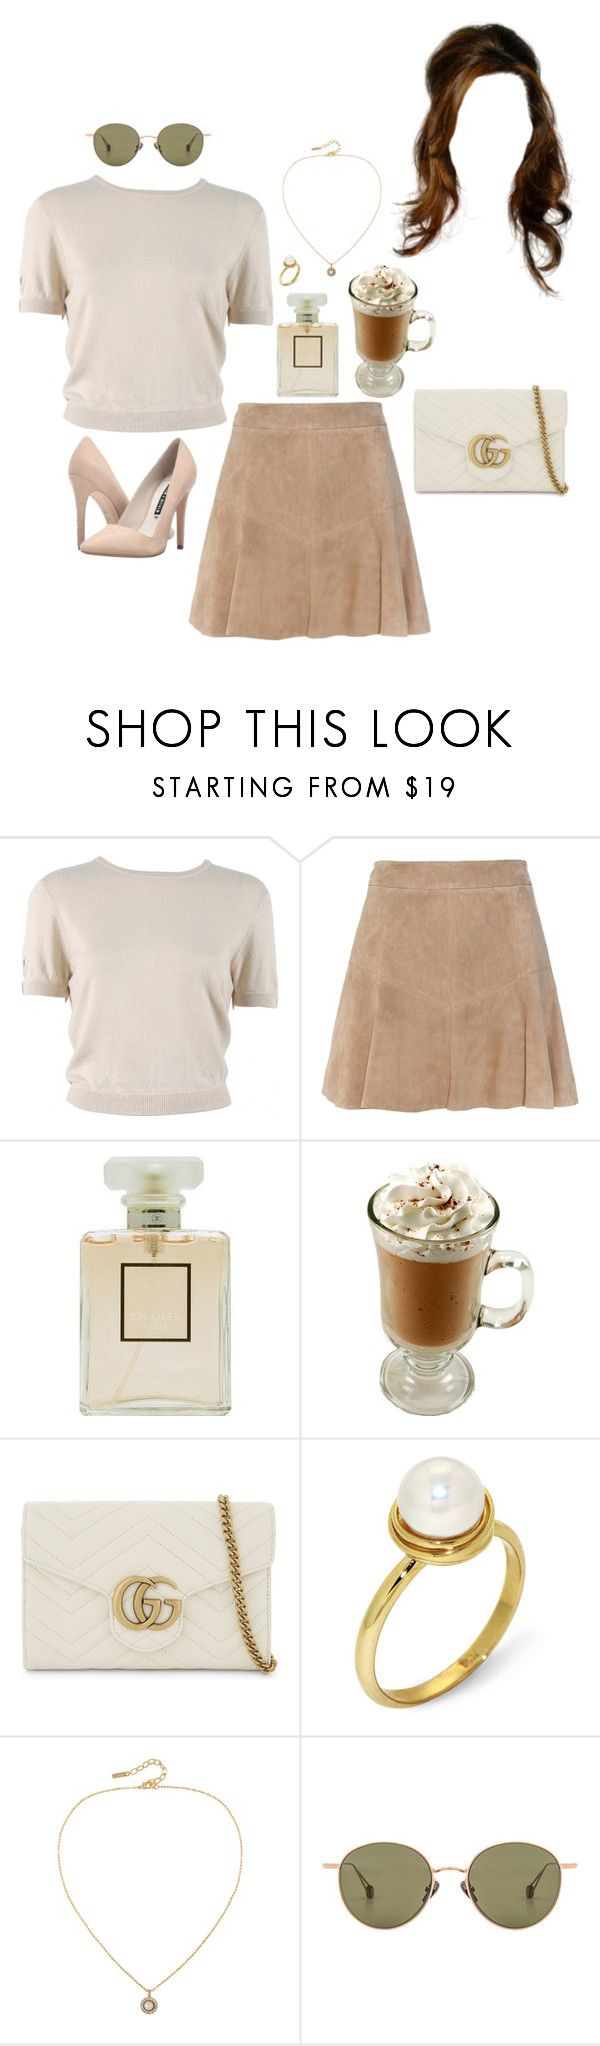 """Untitled #1548"" by rachel-rentz ❤ liked on Polyvore featuring Behnaz Sarafpour, Chanel, Gucci, Arosha Luigi Taglia, Susan Caplan Vintage, Ahlem and Alice + Olivia"